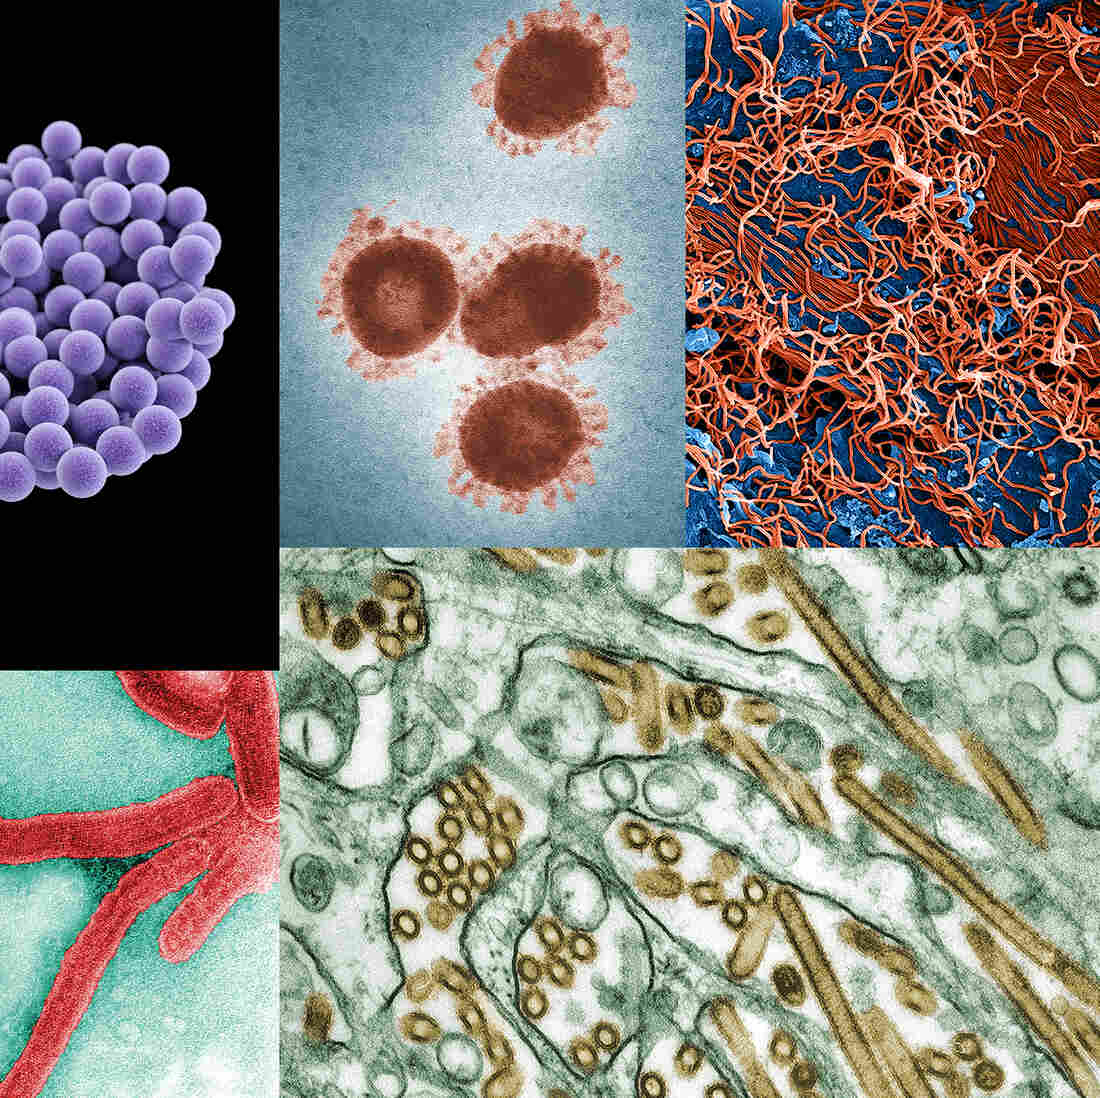 Do you know what the deadliest disease is? Hint: It's not Ebola (viral particles seen here in a digitally colorized microscopic image, at top right, along with similar depictions of other contagious diseases)